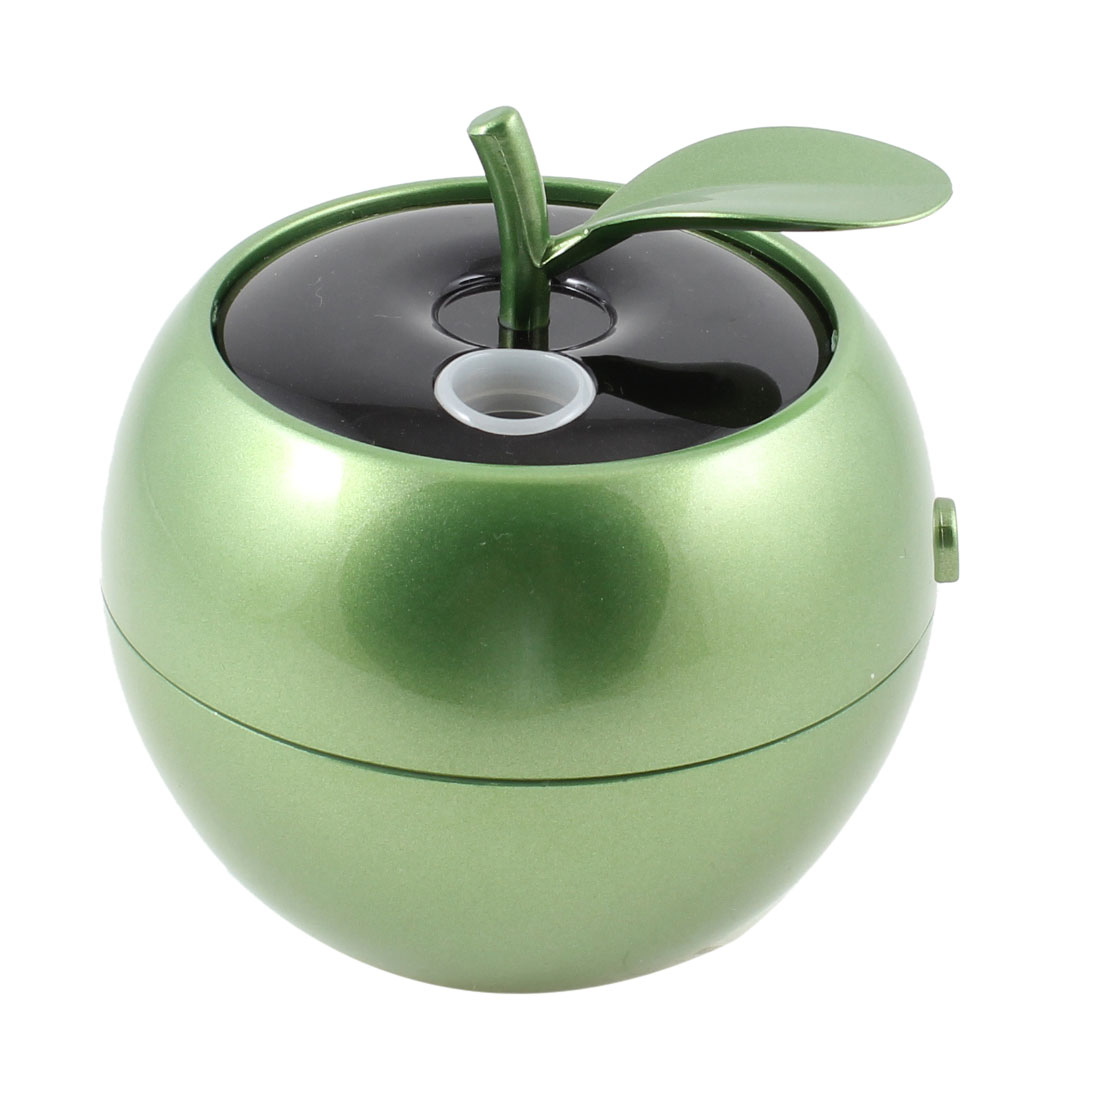 USB Cool Apple Ultrasonic Air Humidifier Mist Anion Moist Purifier